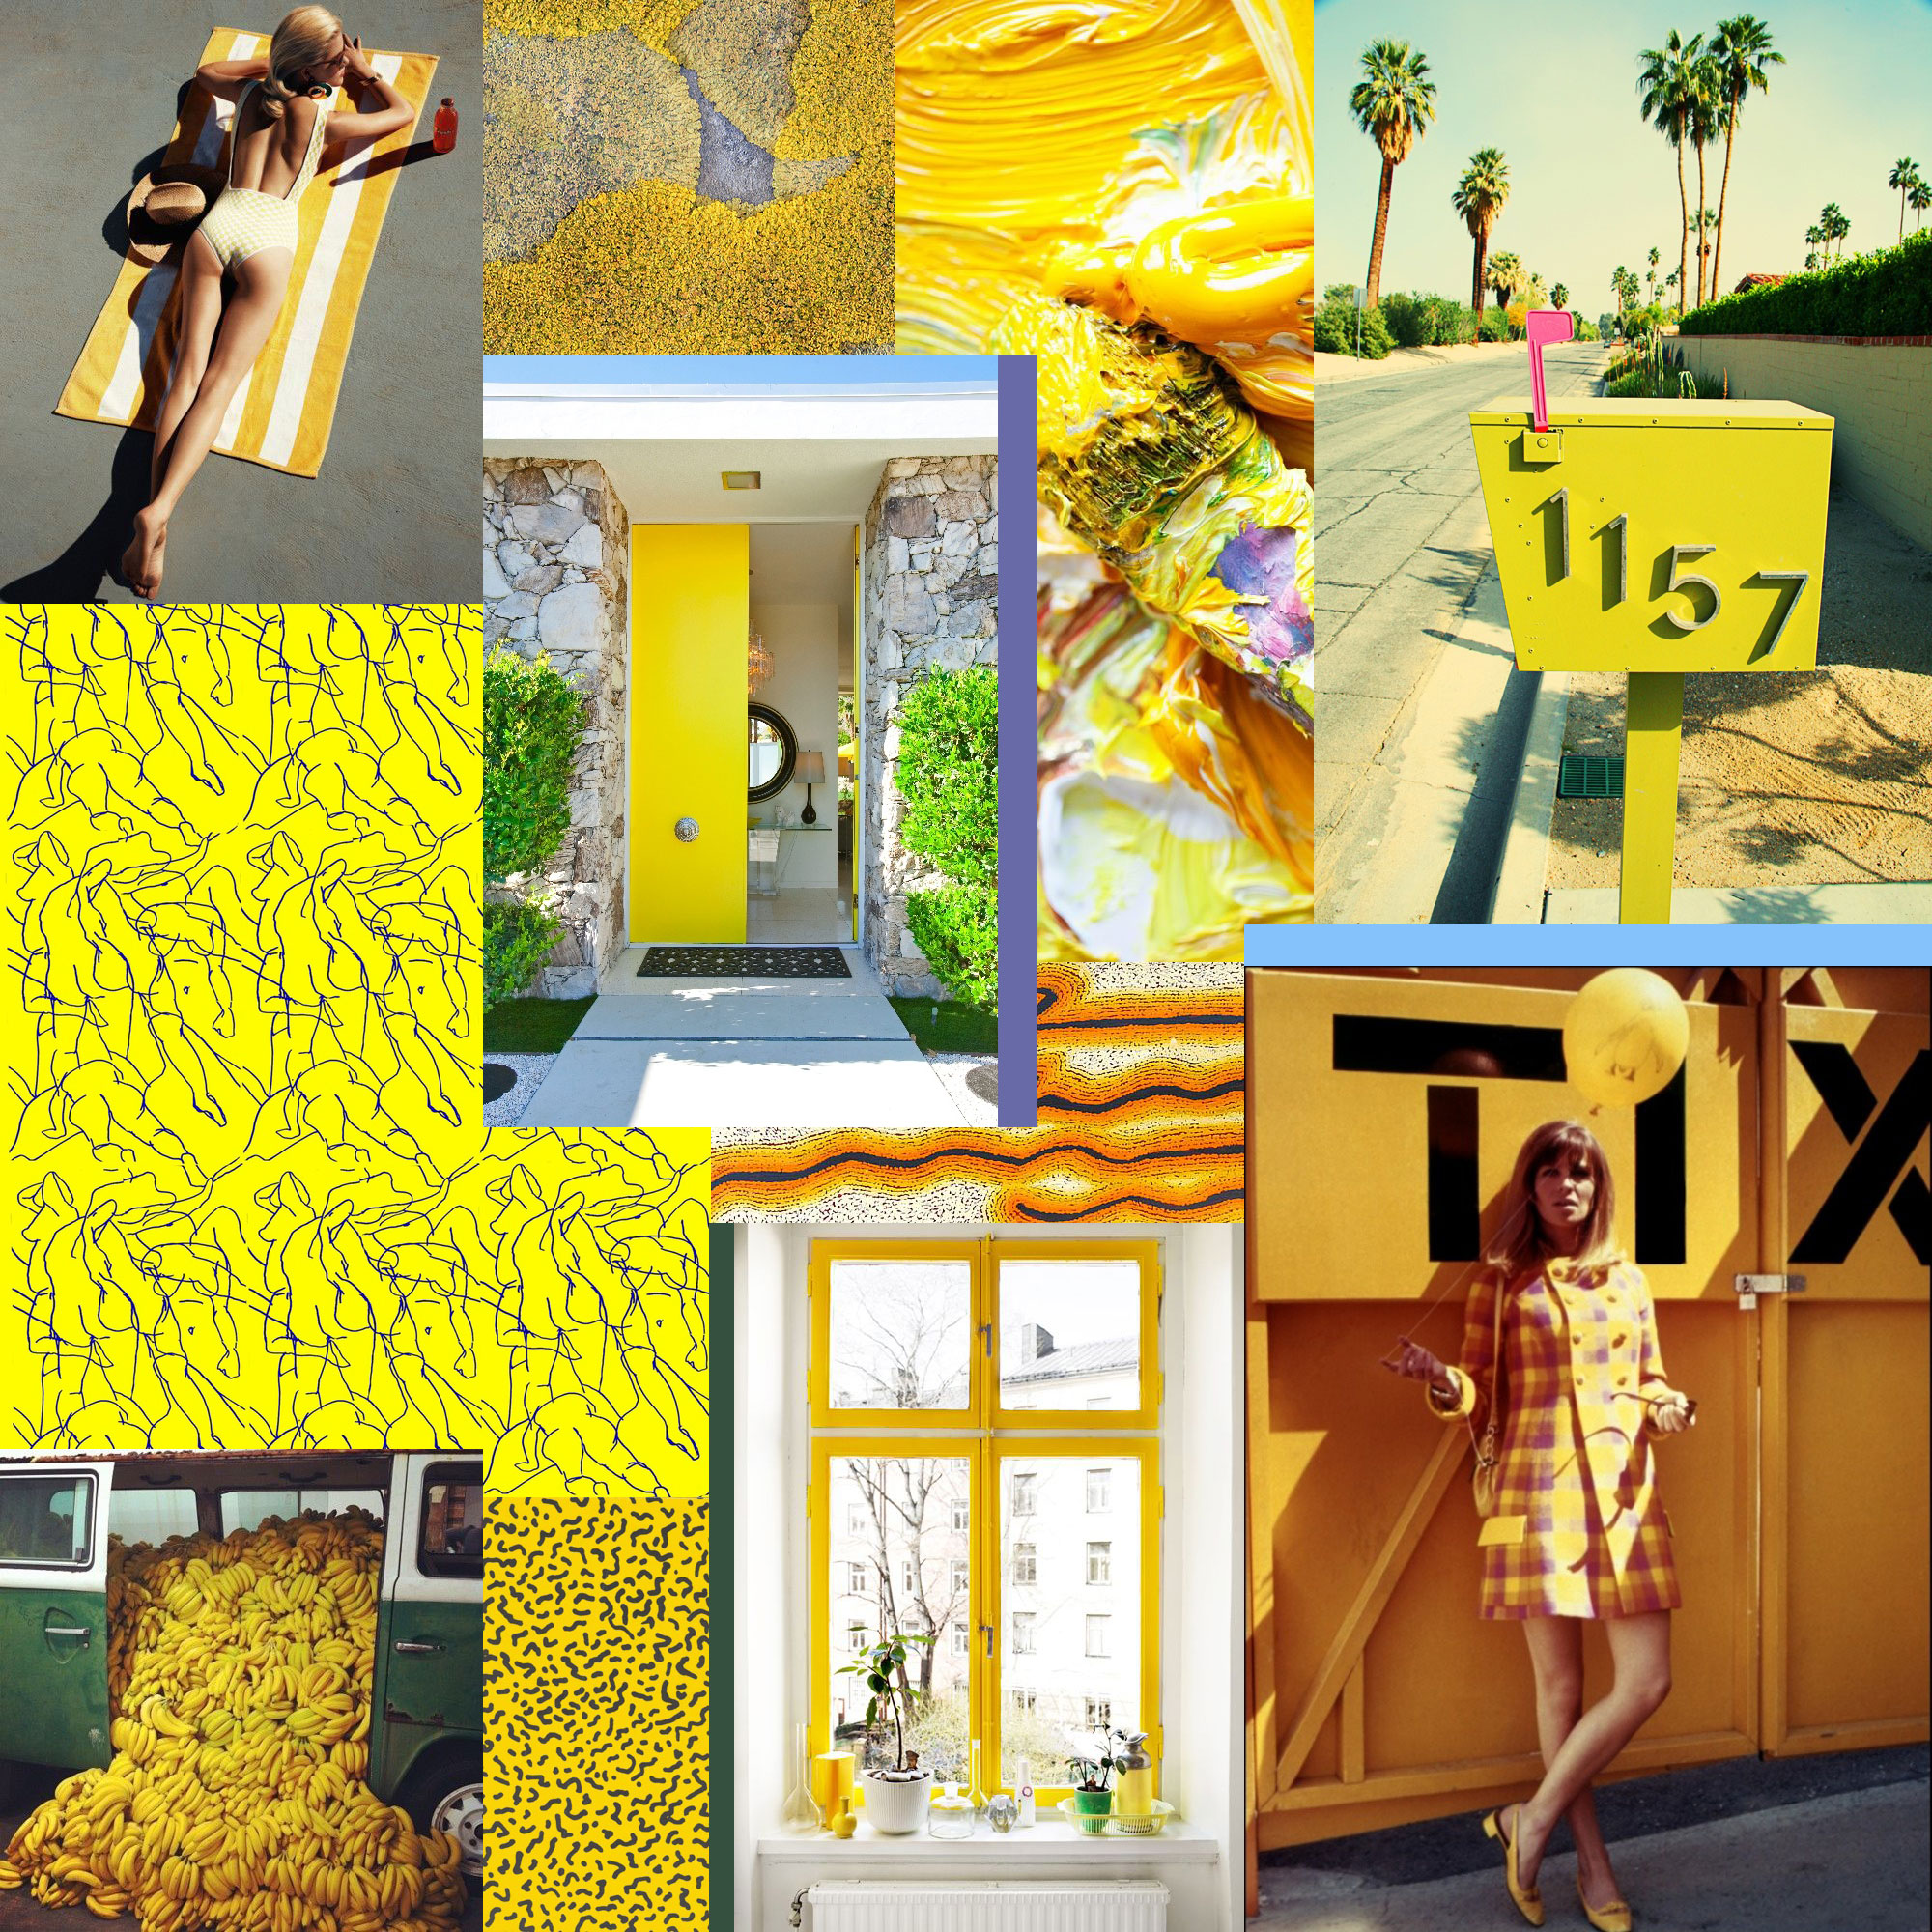 The many moods of yellow, a collage by Liz Nehdi, 2014. Image credits below